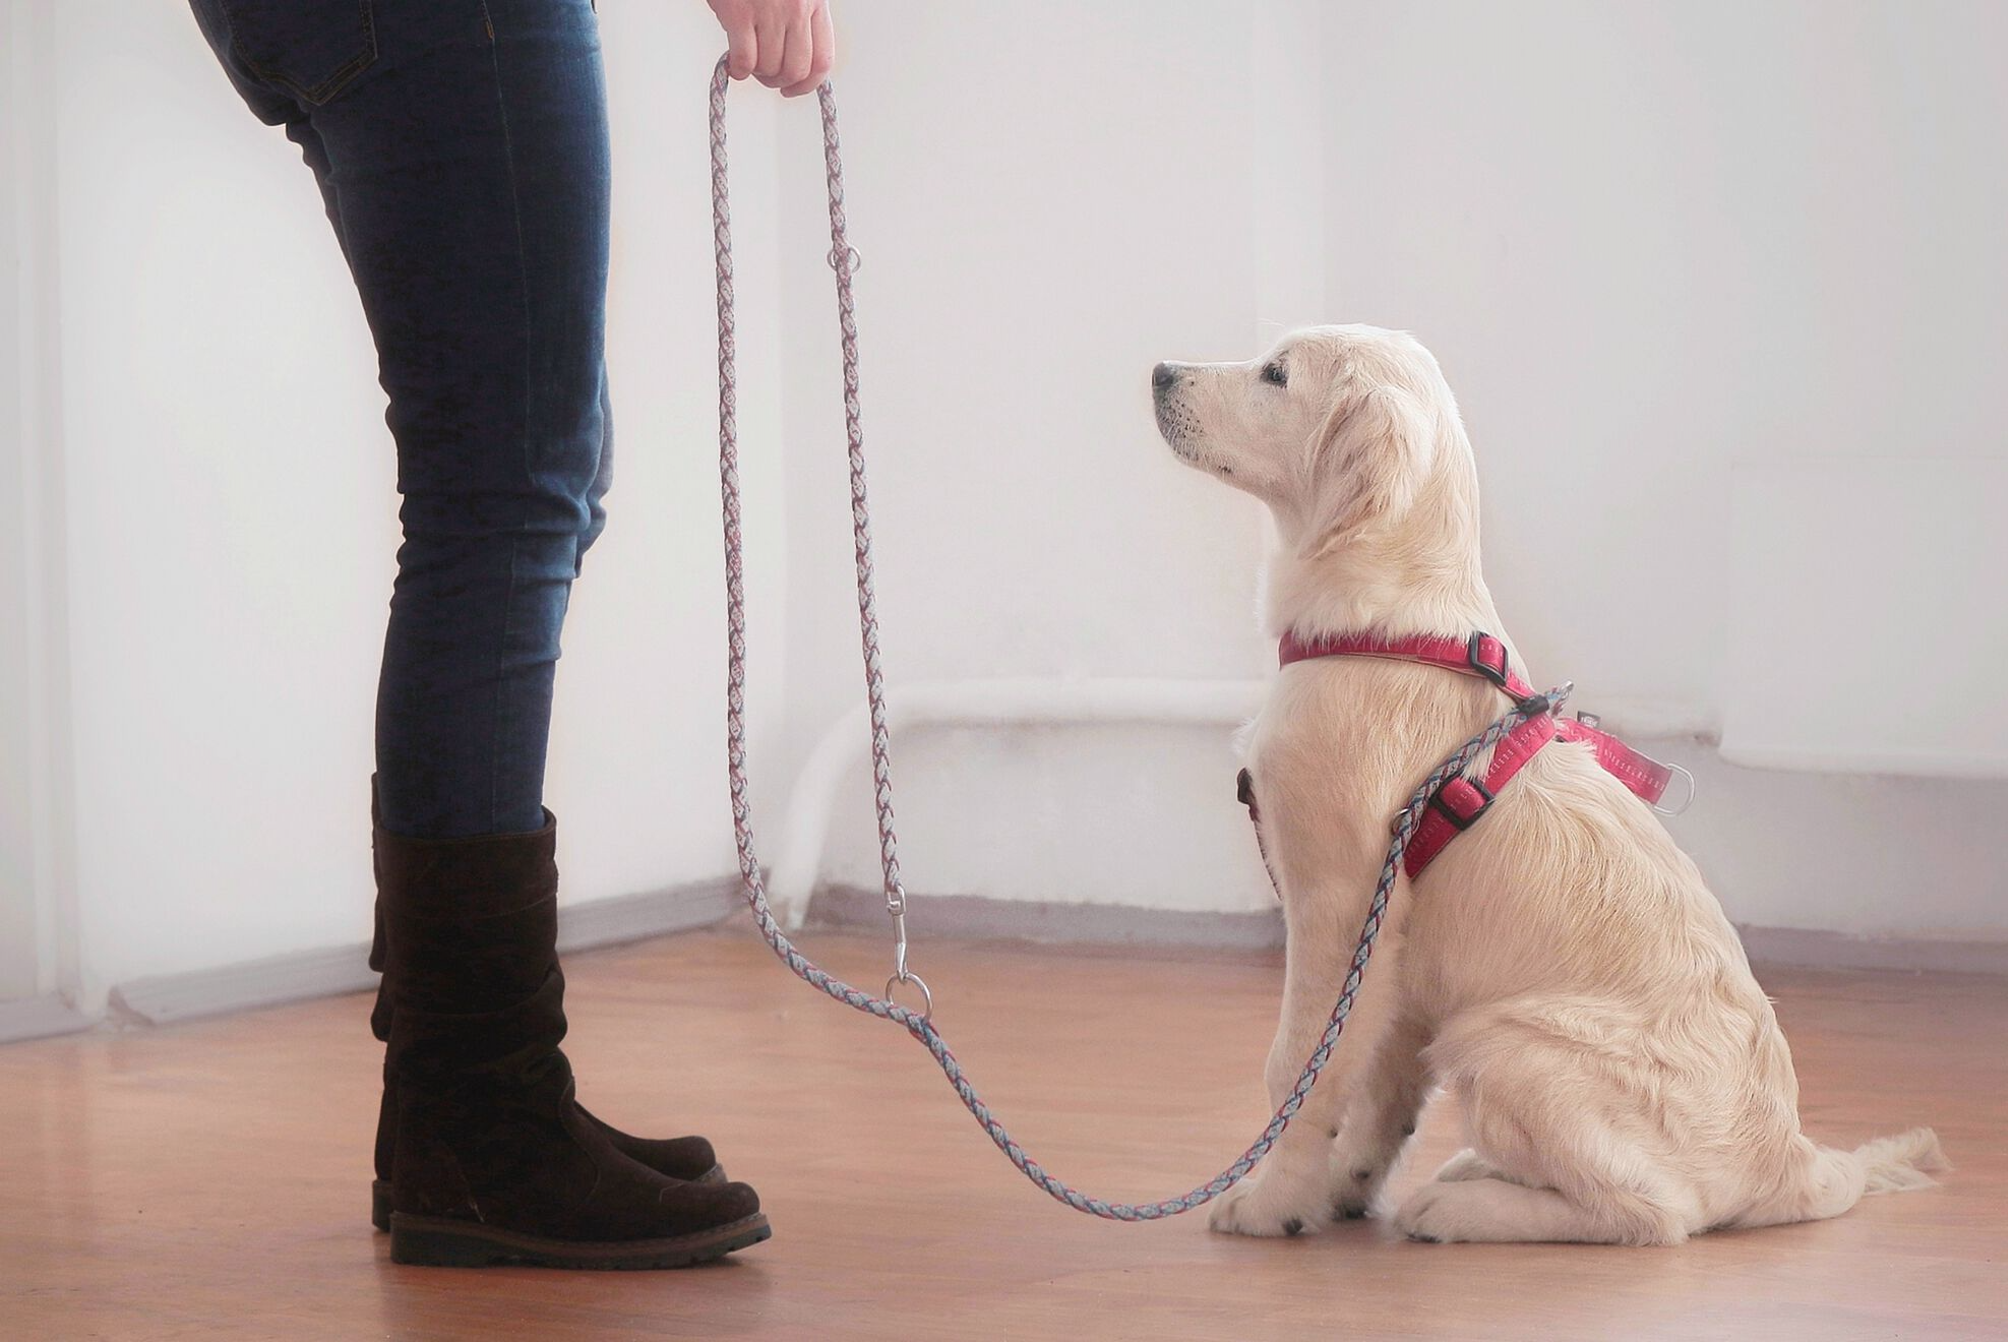 A young puppy starting on its basic training; exposure to novel environments, people and objects is critical for puppies in their first 13 weeks of life.